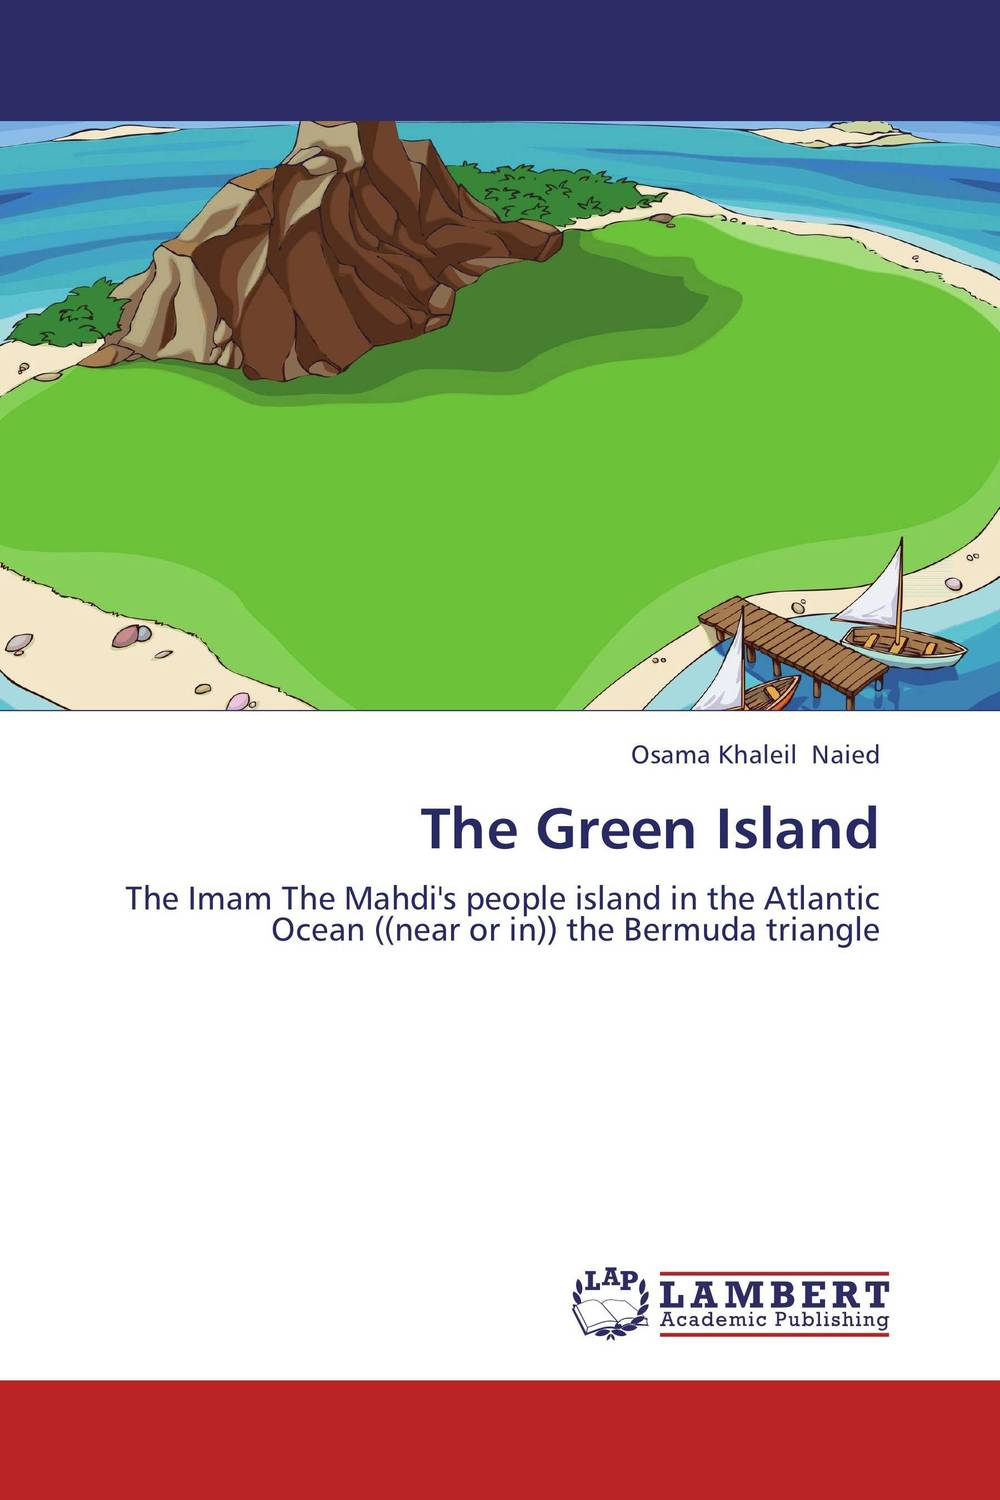 The Green Island the heir